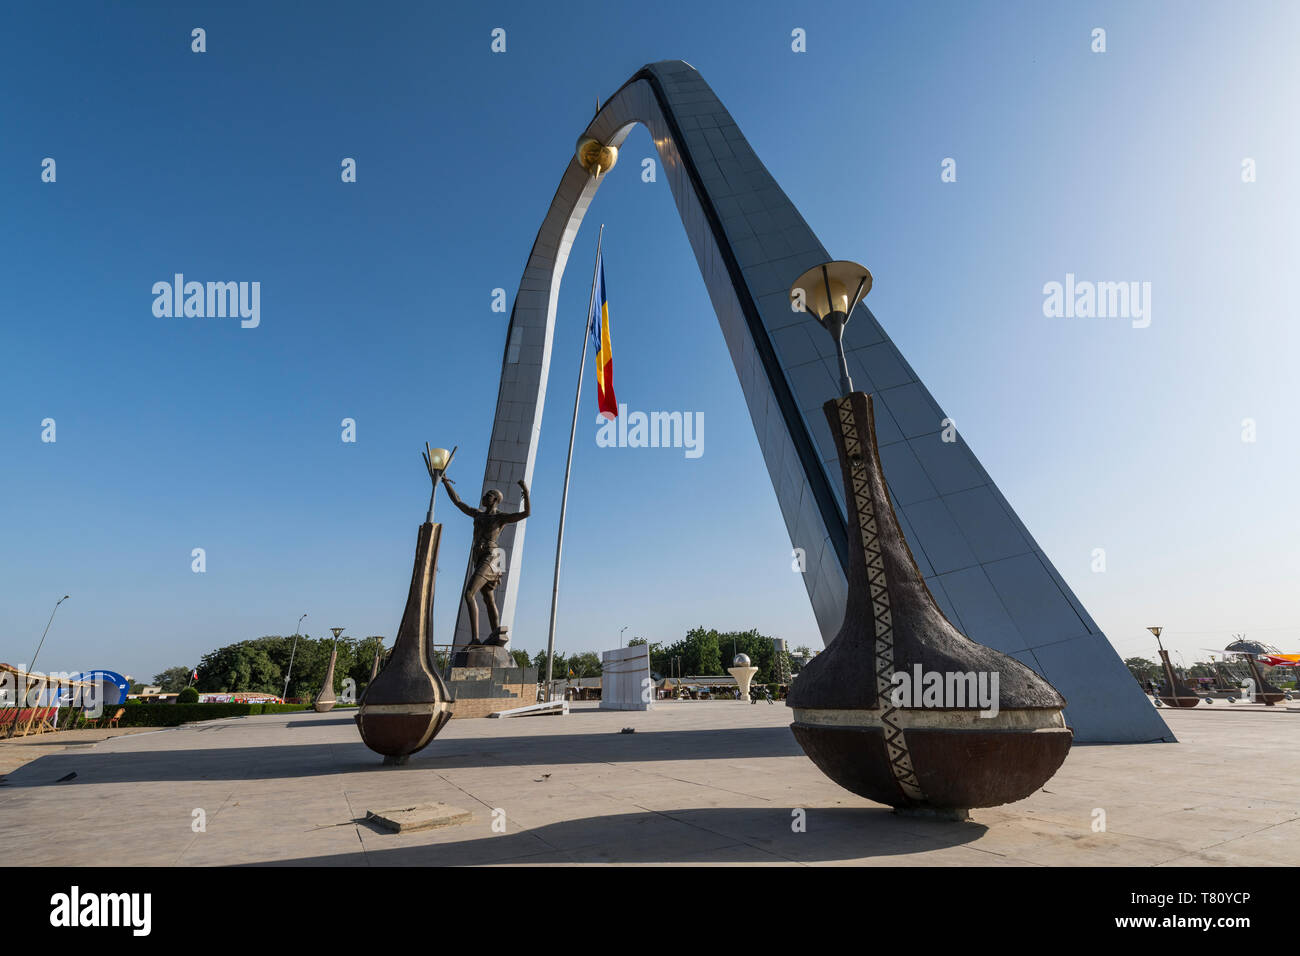 Backlight of the monument of Independence, Place de la Nation, N'Djamena, Chad, Africa - Stock Image